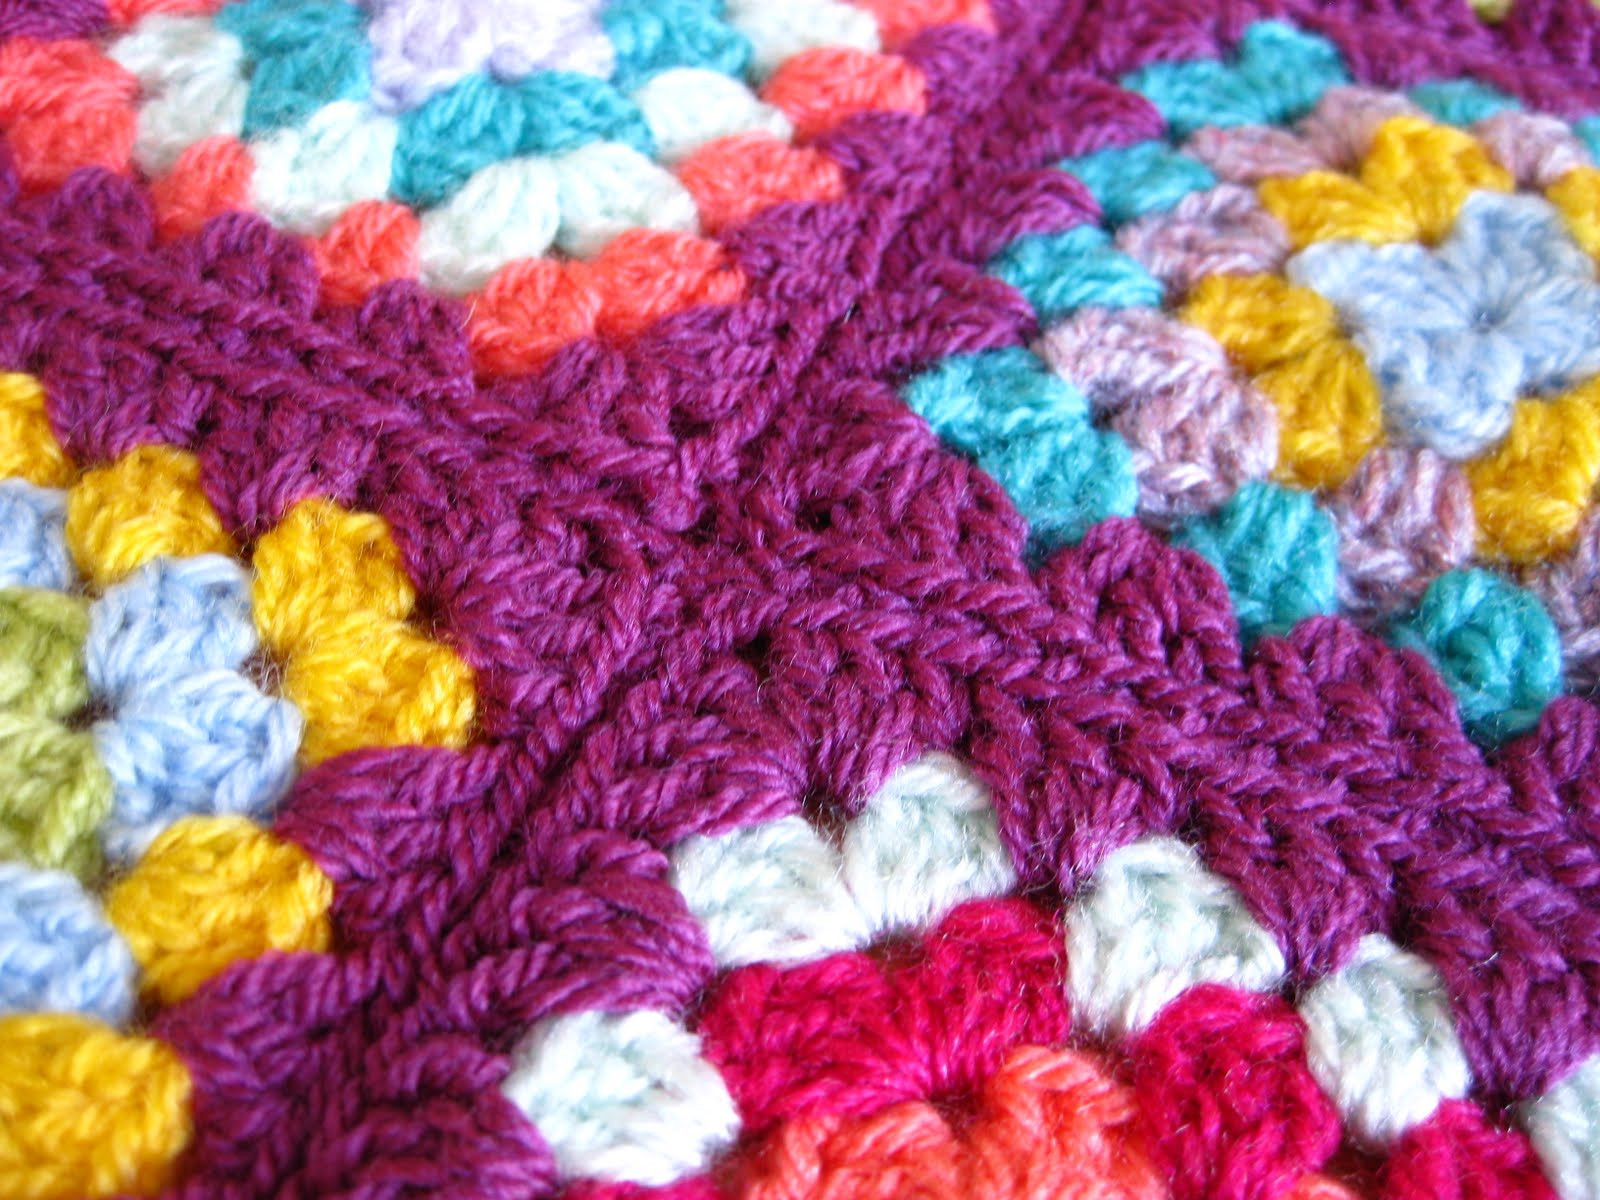 sewing granny squares to her